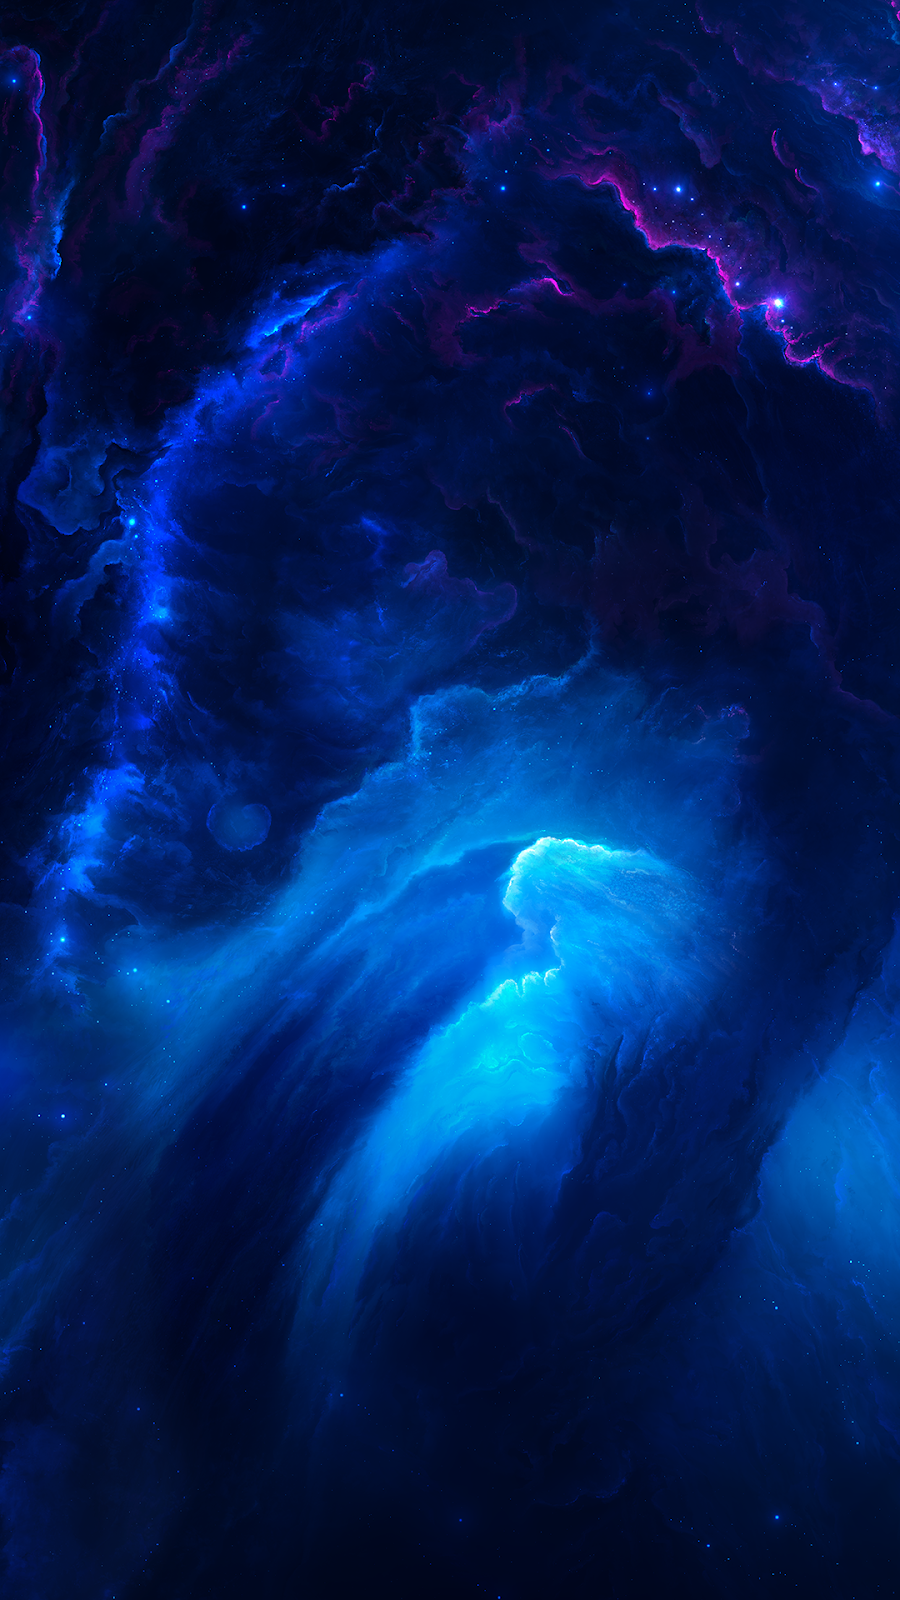 Blue Space Wallpaper Iphone Android Wallpaper Space Blue Space Scenery